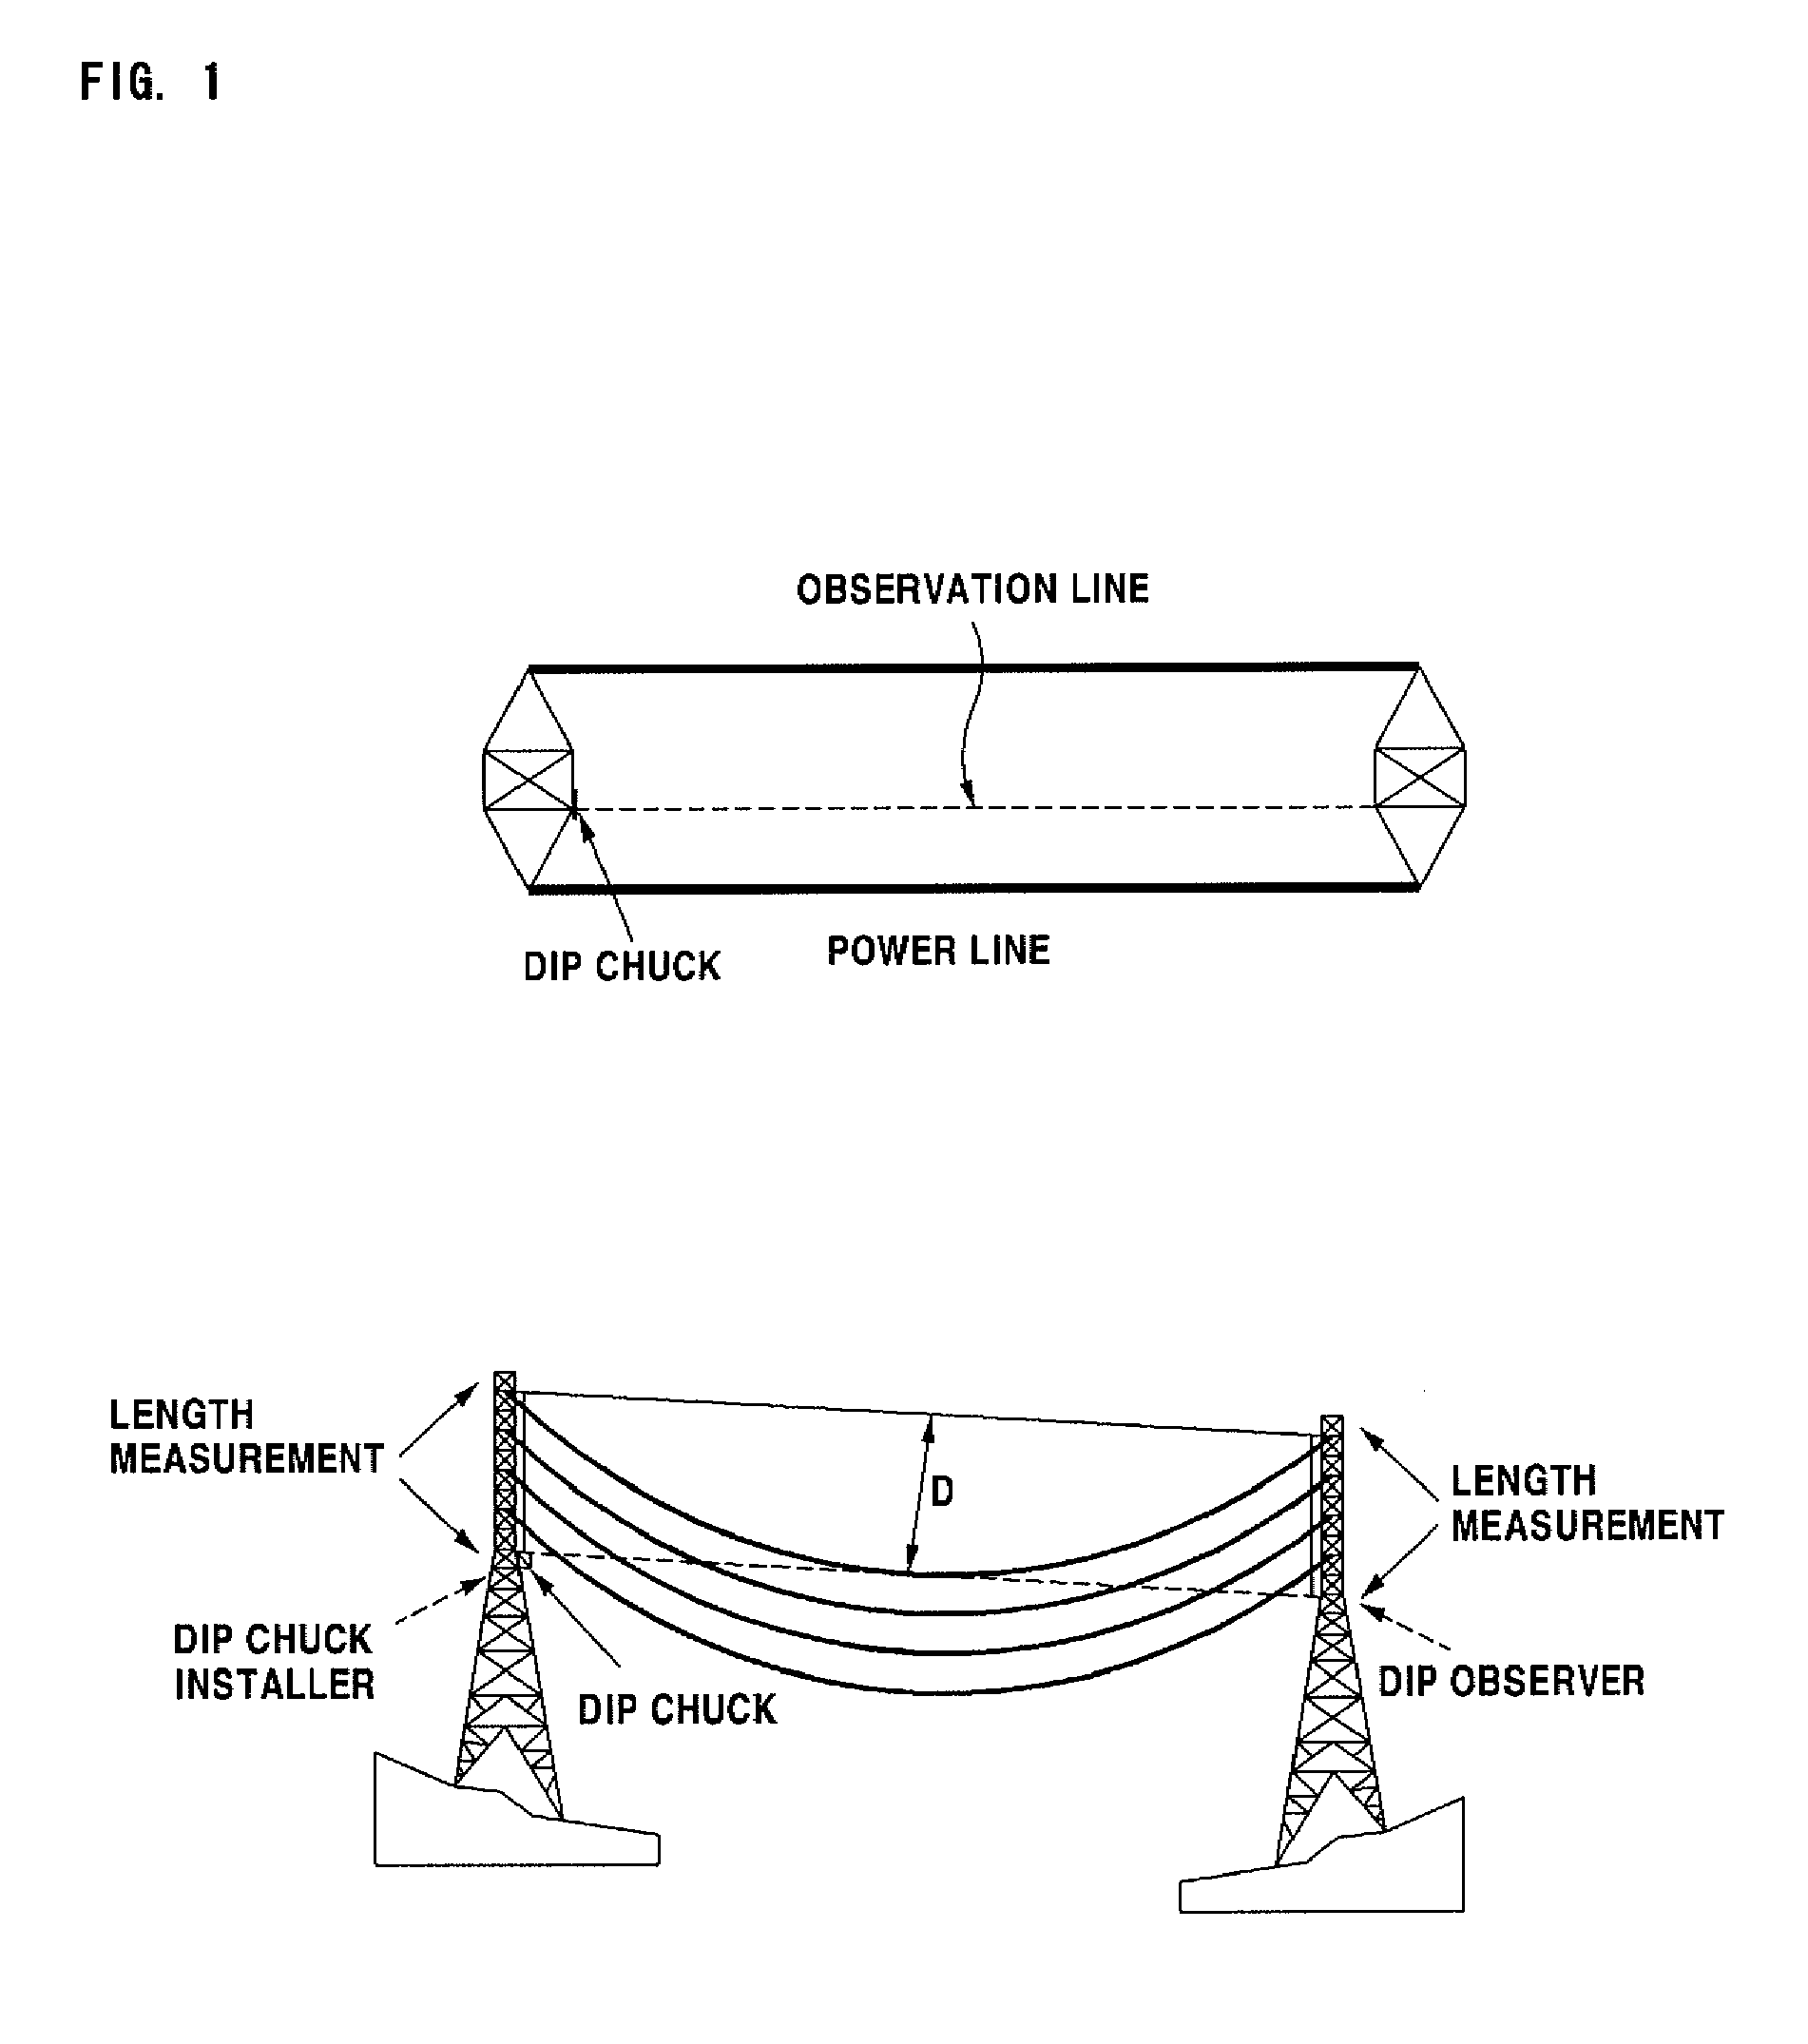 Master Document Template The Lines Neutral Earthing And Phase Conductors For Power Circuits